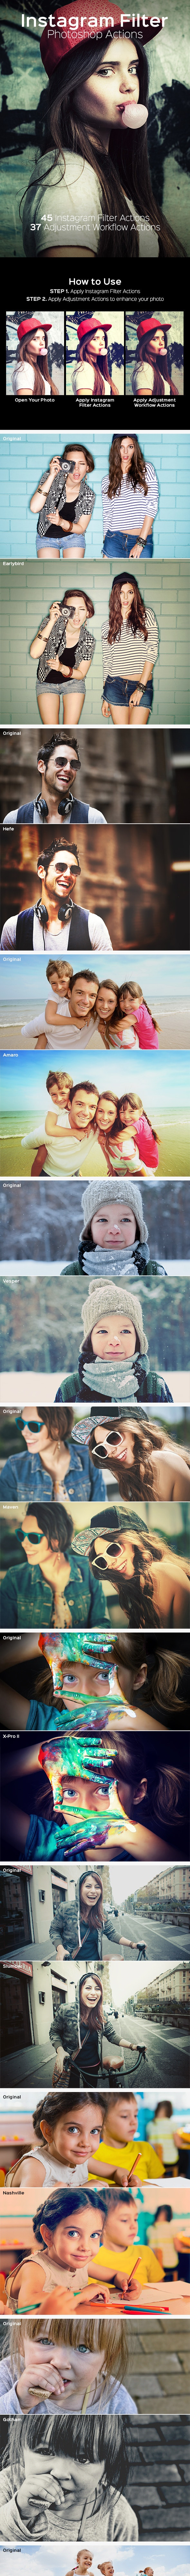 Instagram Filter - Photoshop Action - Photo Effects Actions